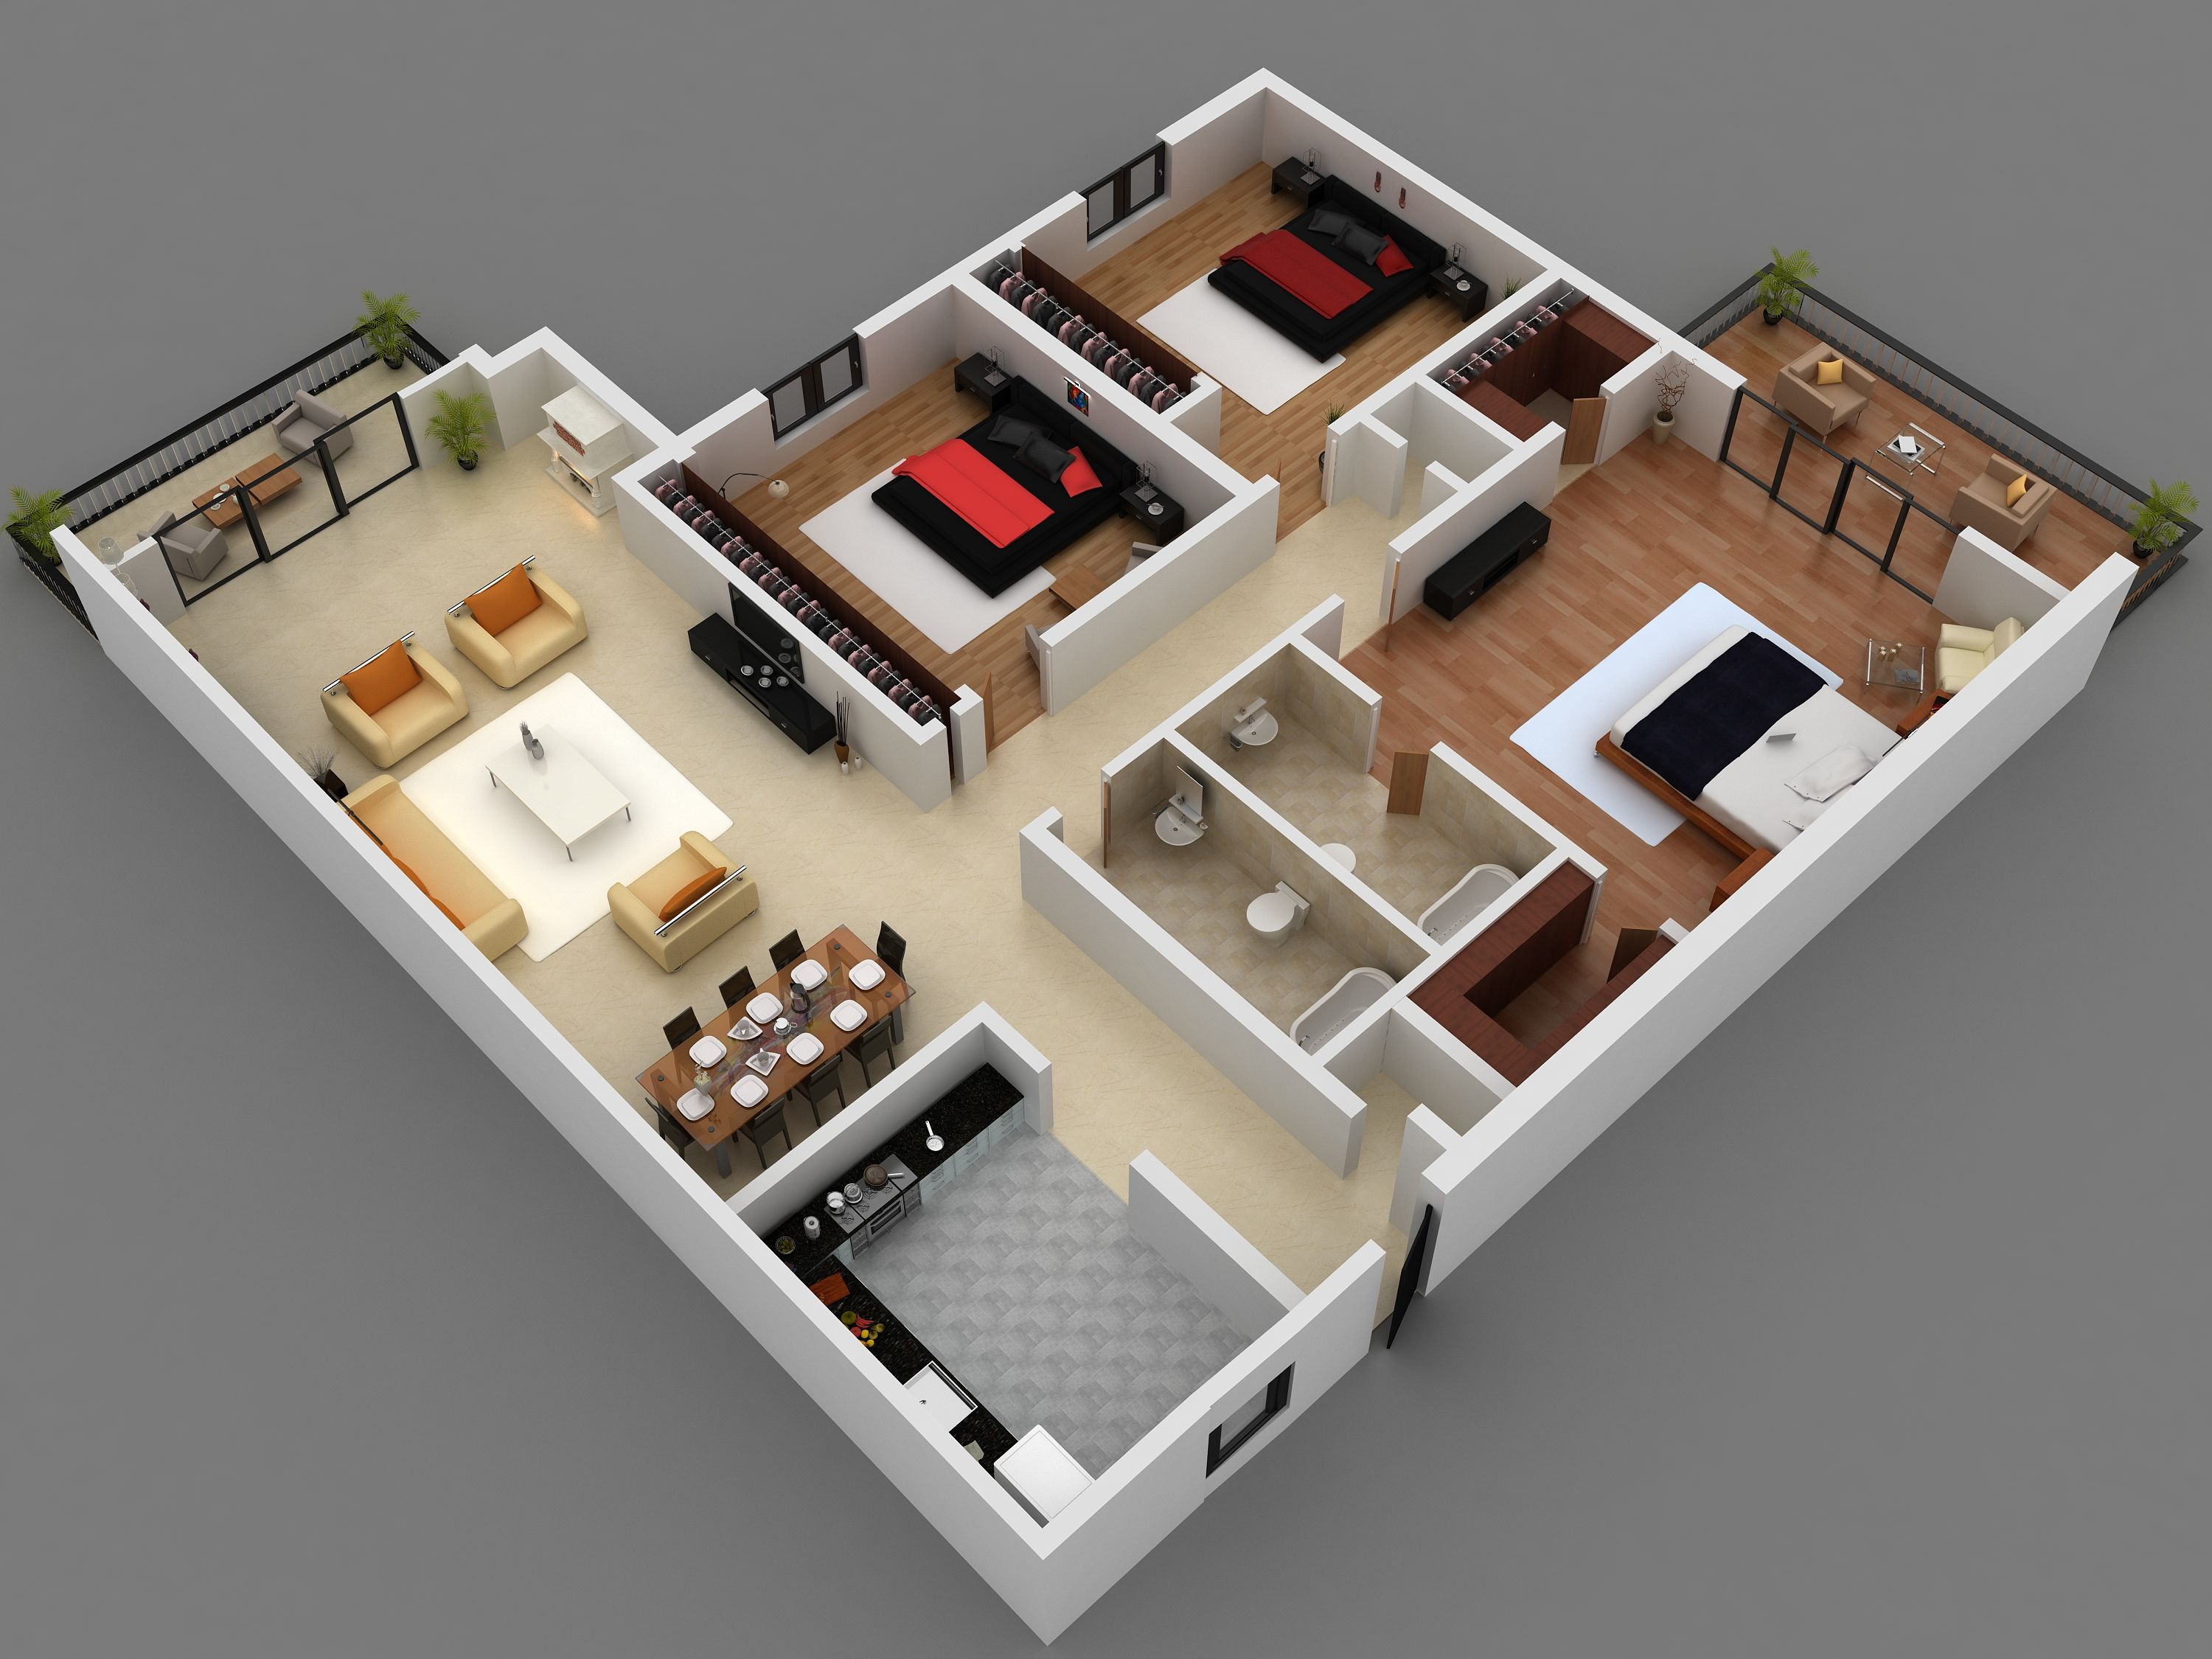 2 Bedroom House Designs 3 Bedroom Flat Floor Plan Terrific Remodelling Backyard Or Other 3